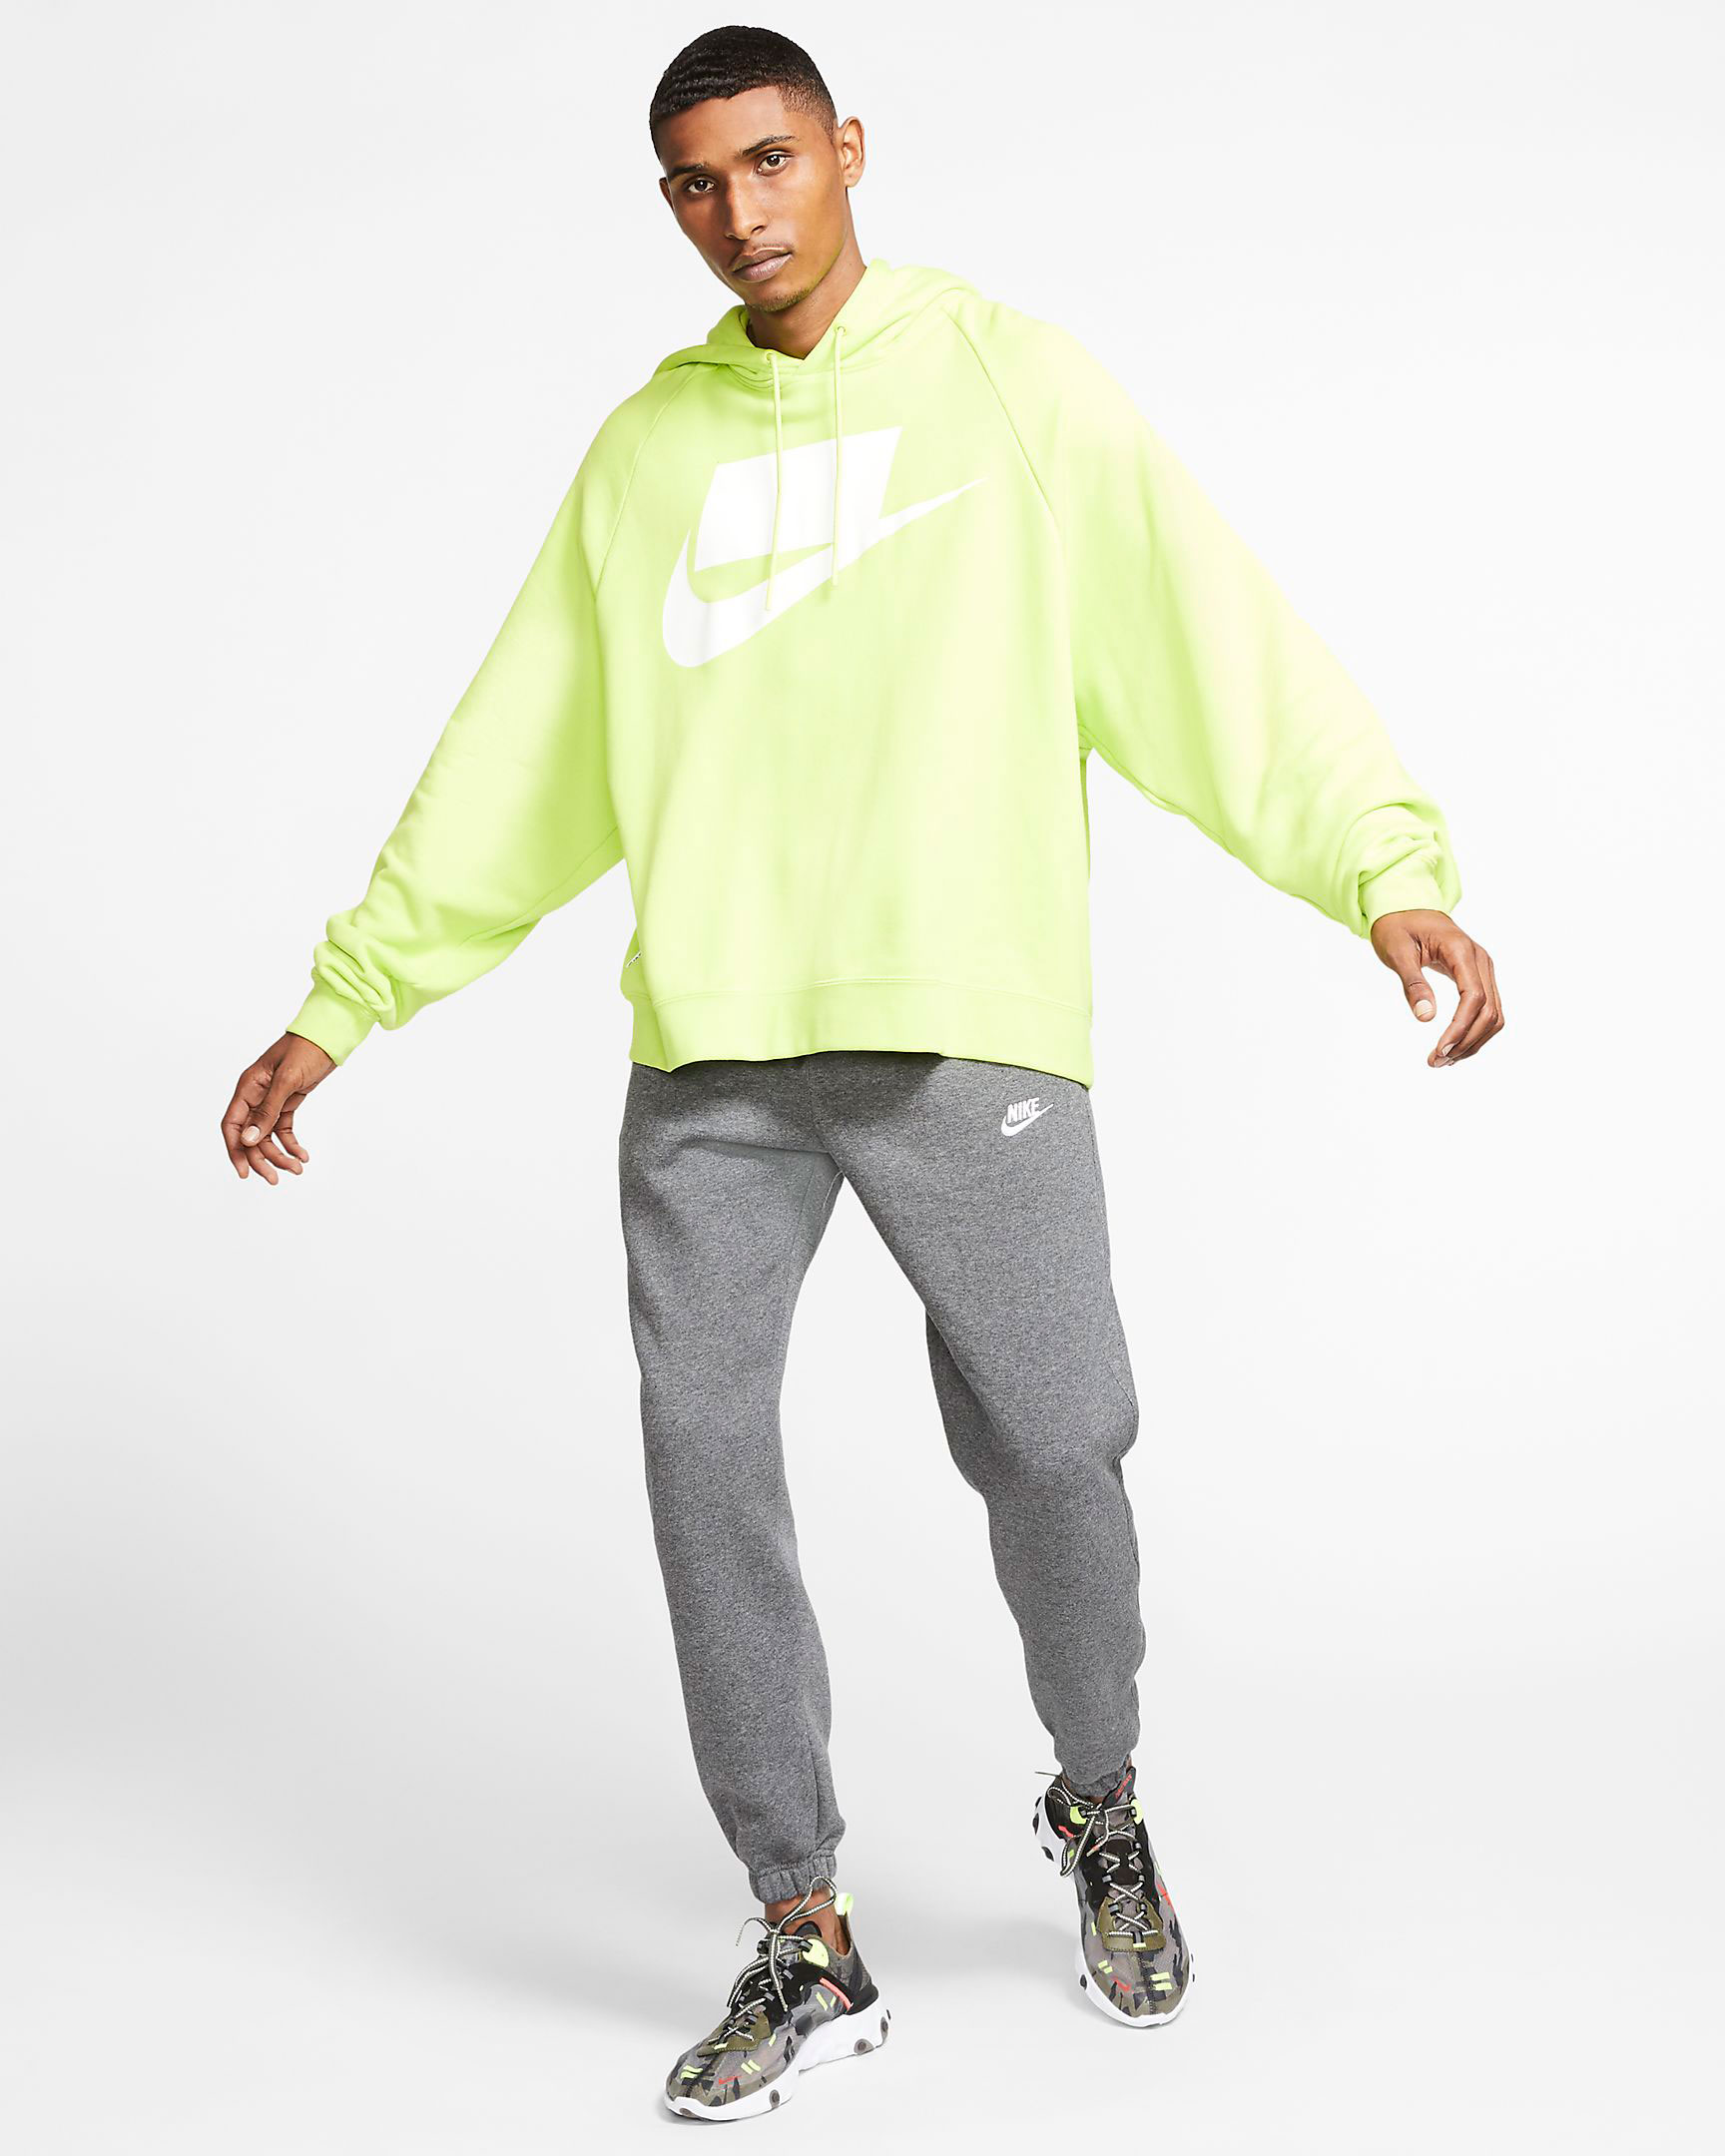 nike-air-max-95-neon-yellow-volt-grey-hoodie-pants-outfit